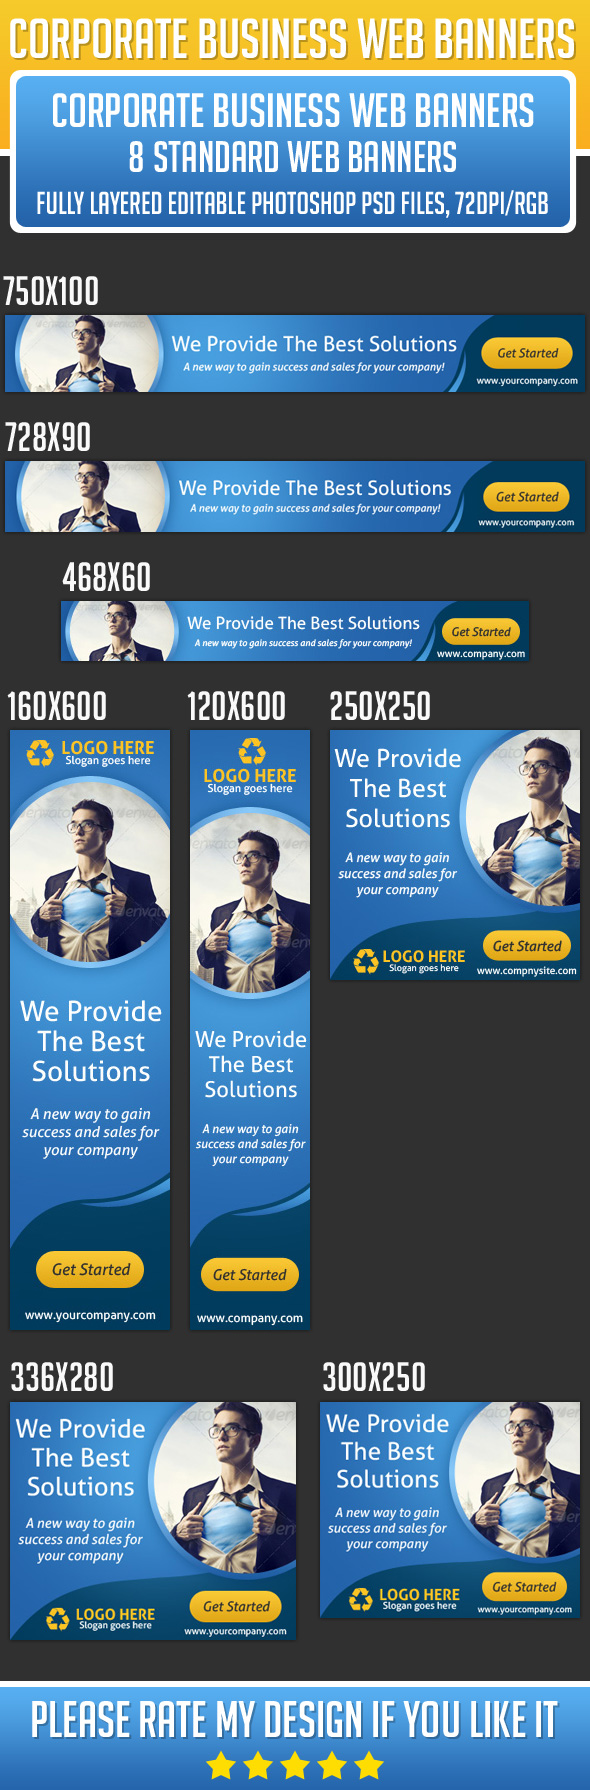 I Will Create a professional Banner or Web Banner PSD File for